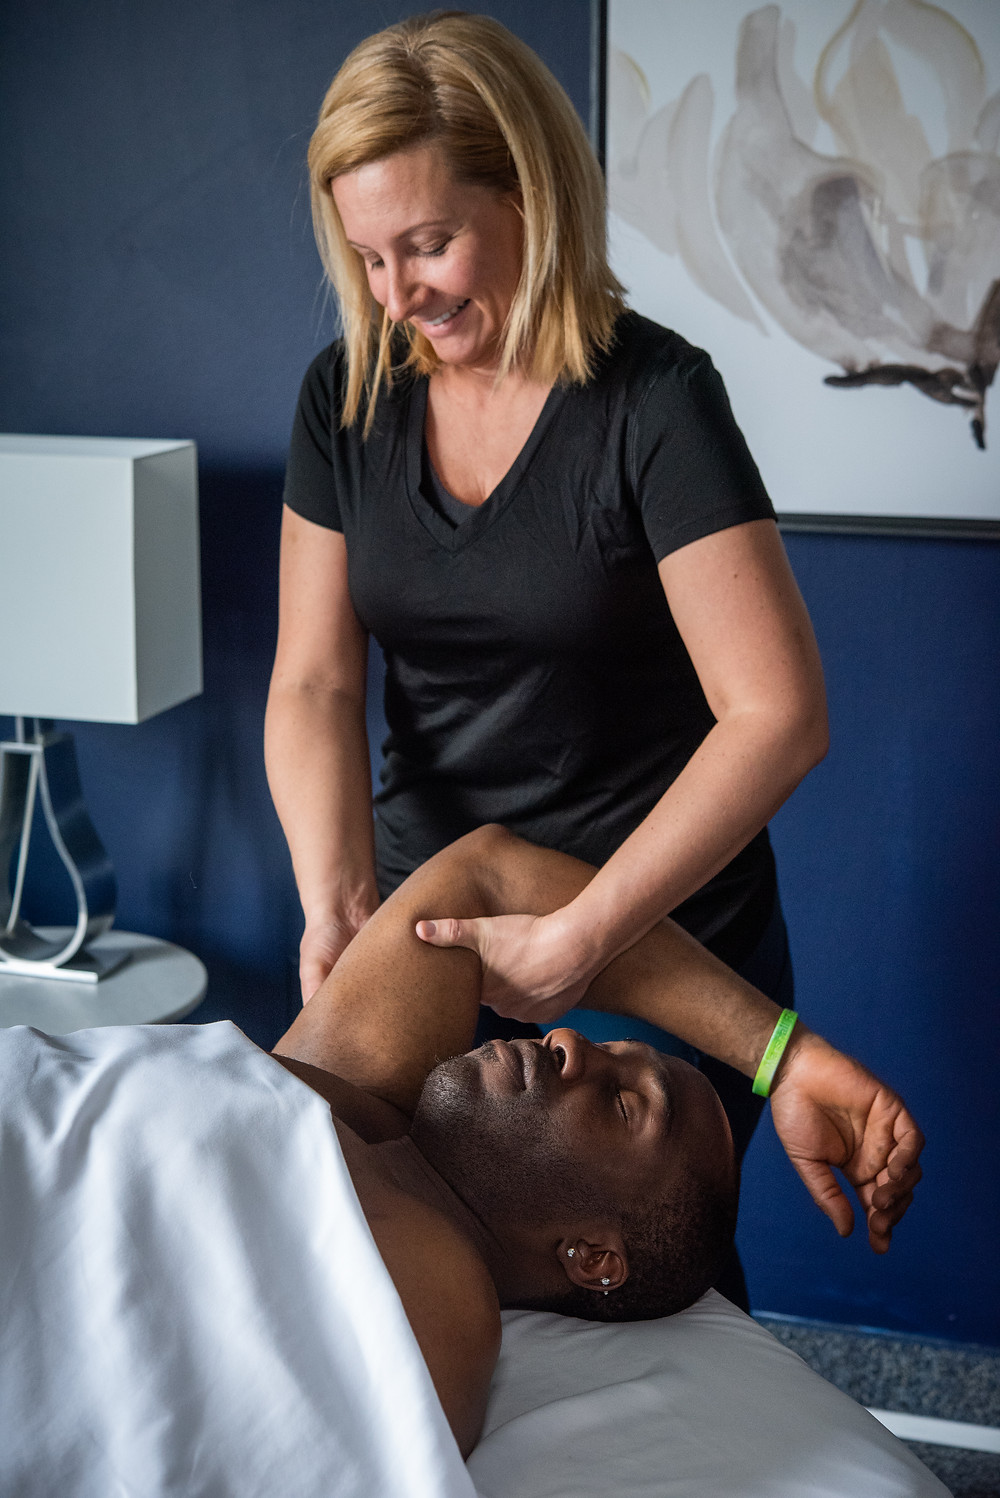 Photo of Abe Koroma in Massage Setting with techniques performed to triceps & biceps performed by Meg Donnelly, LMT